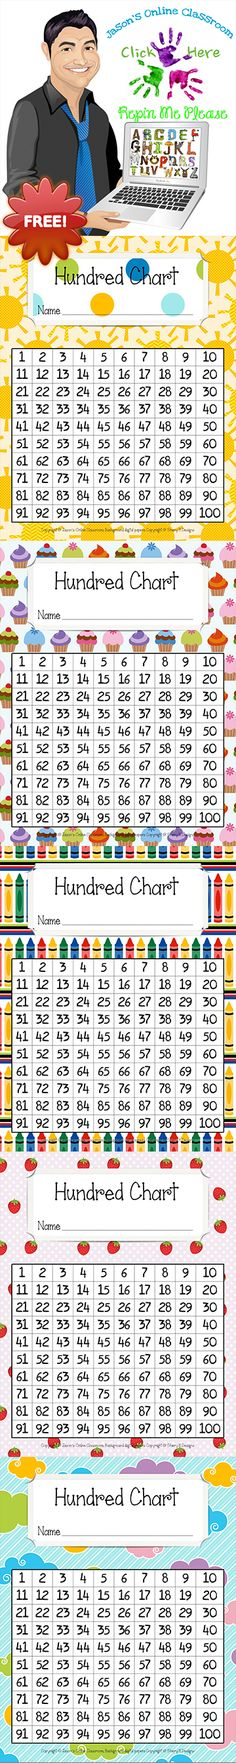 FREEBIE hundred chart in 28 different styles including basic black and white. Helpful for students in elementary level mathematics classes. Show us some LOVE with a nice comment/feedback at our store! Math Classroom, Kindergarten Math, Teaching Math, Cardinal Numbers, Math Activities, Teacher Resources, Hundreds Chart, 100 Chart, Early Math